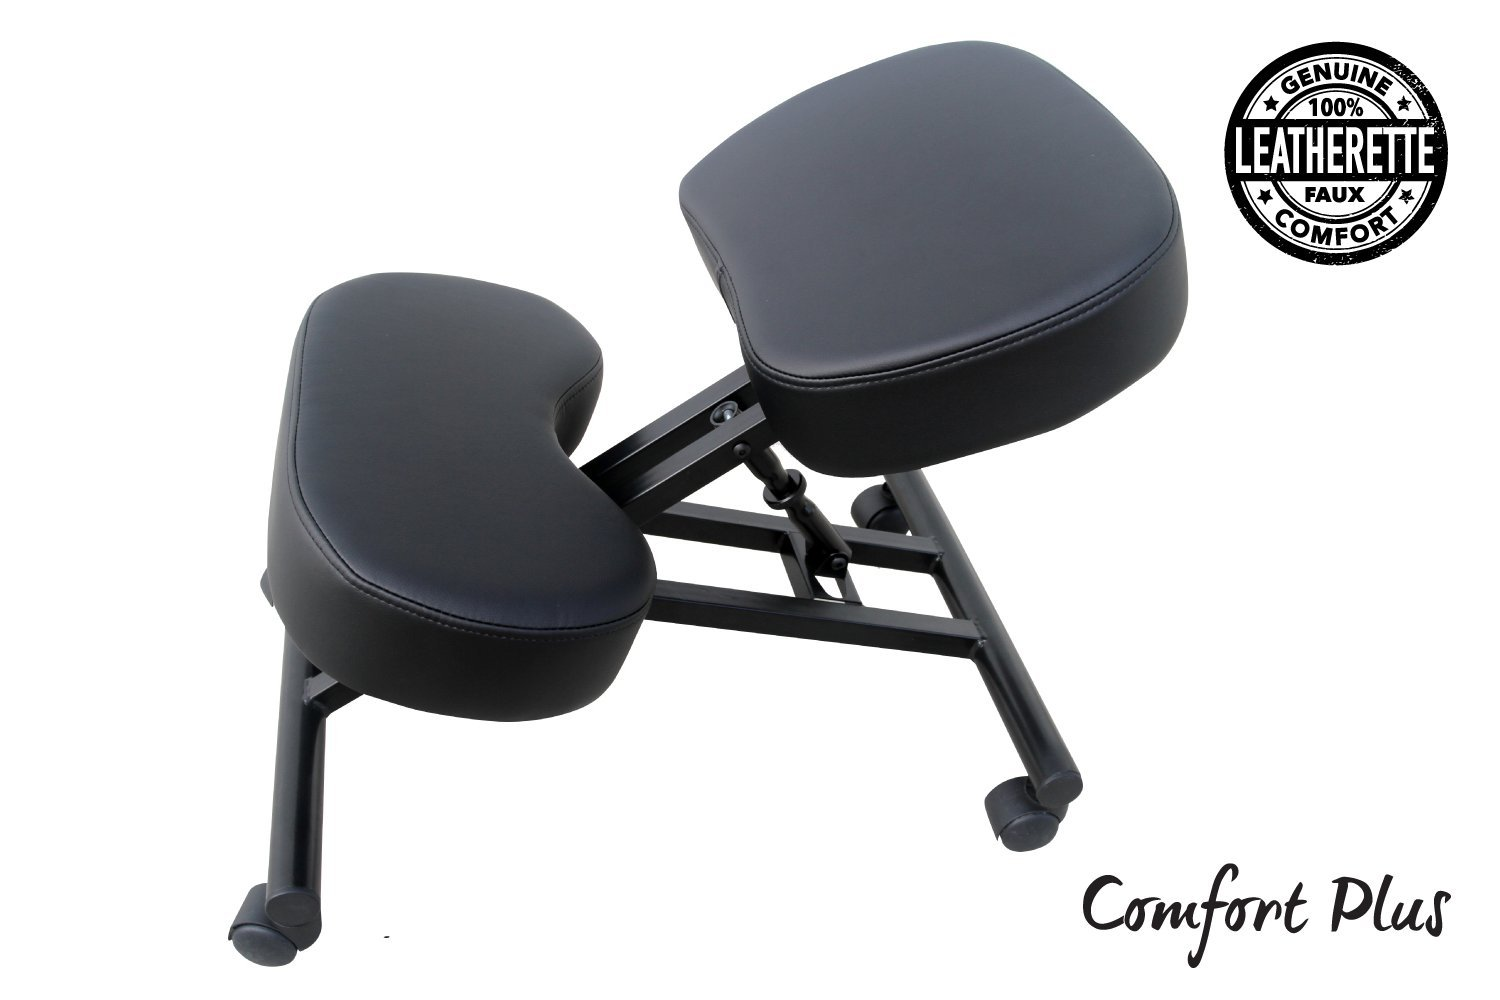 perfect posture chair. Amazon.com : The Comfort Plus Perfect Posture Chair | Kneeling Extra Padding And Ultra Soft Design, Black, Adjustable With Rollers Ergonomic T